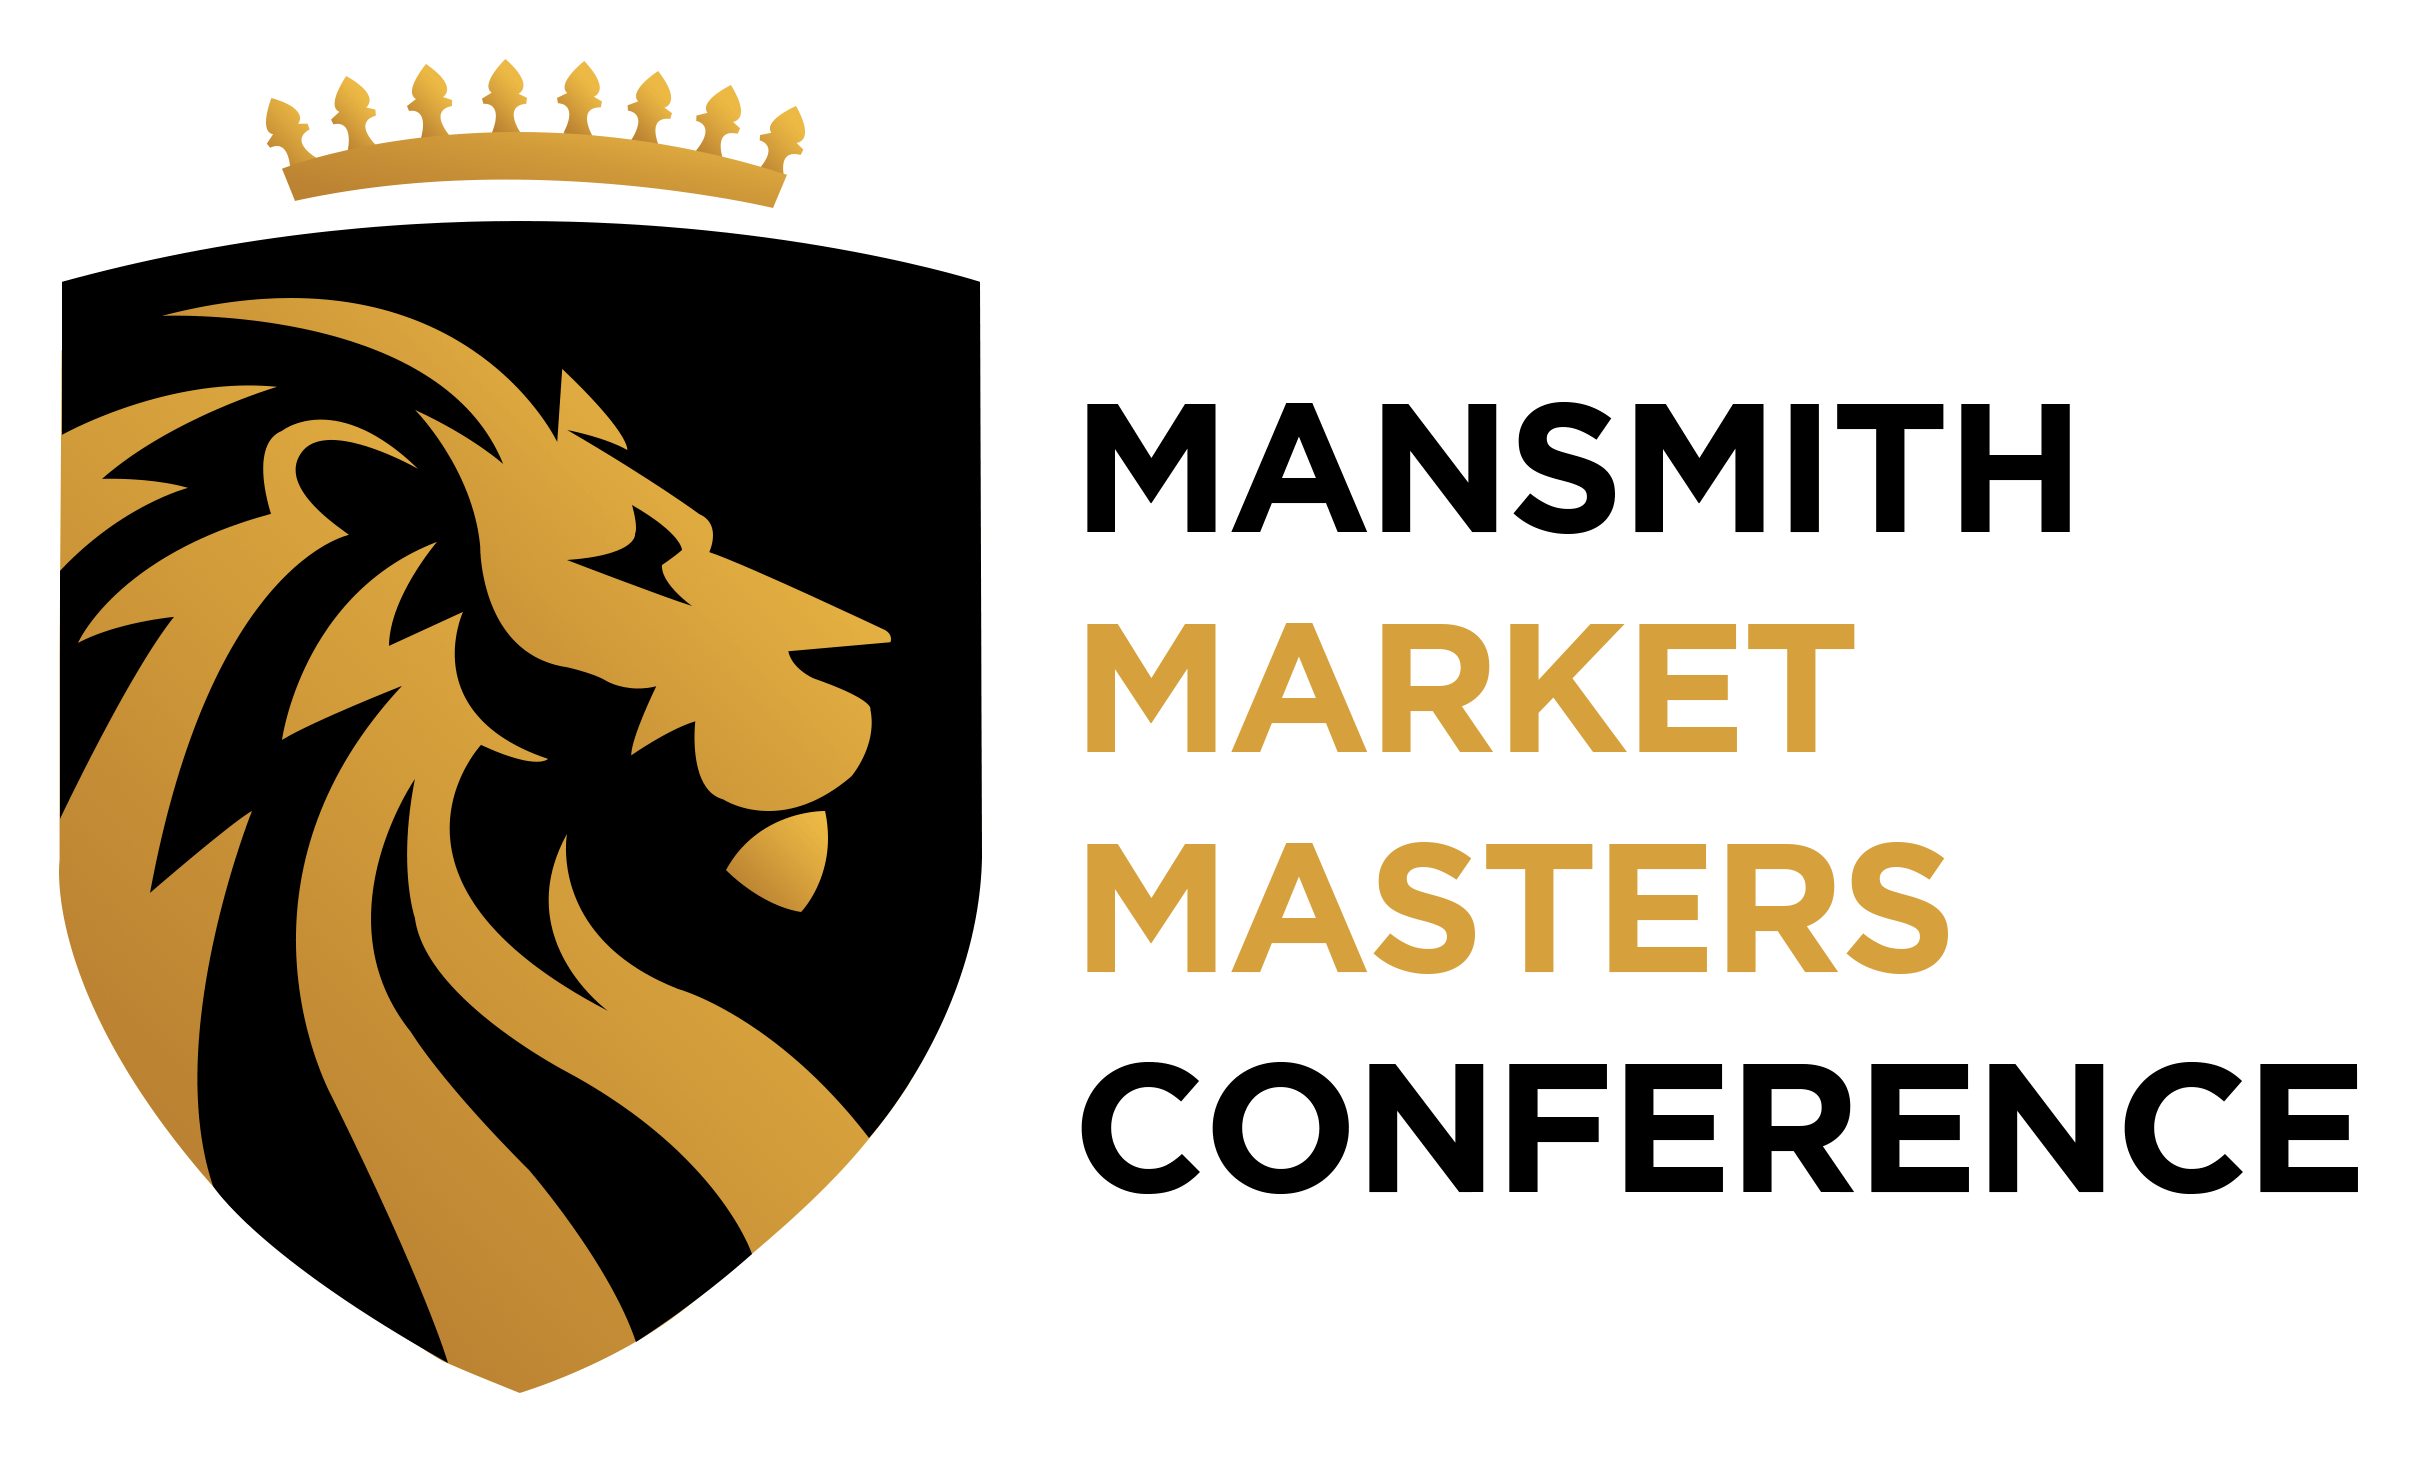 Mansmith Market Masters Conference